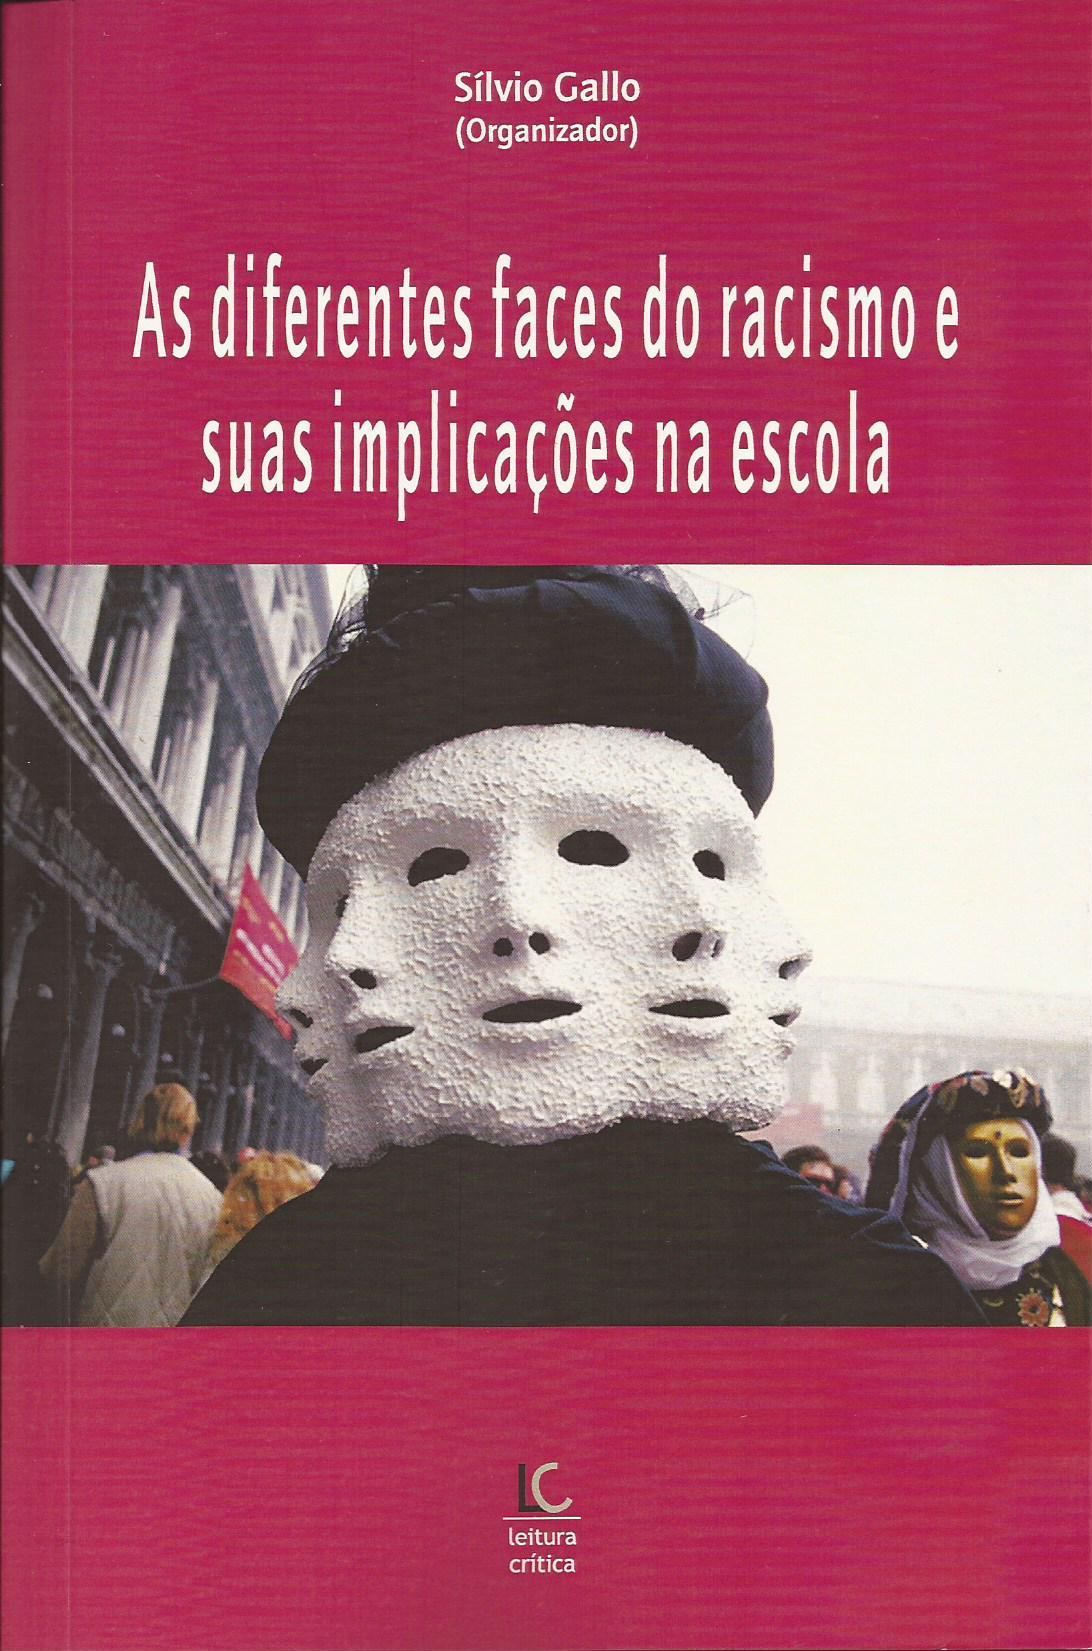 As diferentes faces do racismo e suas implicações na escola